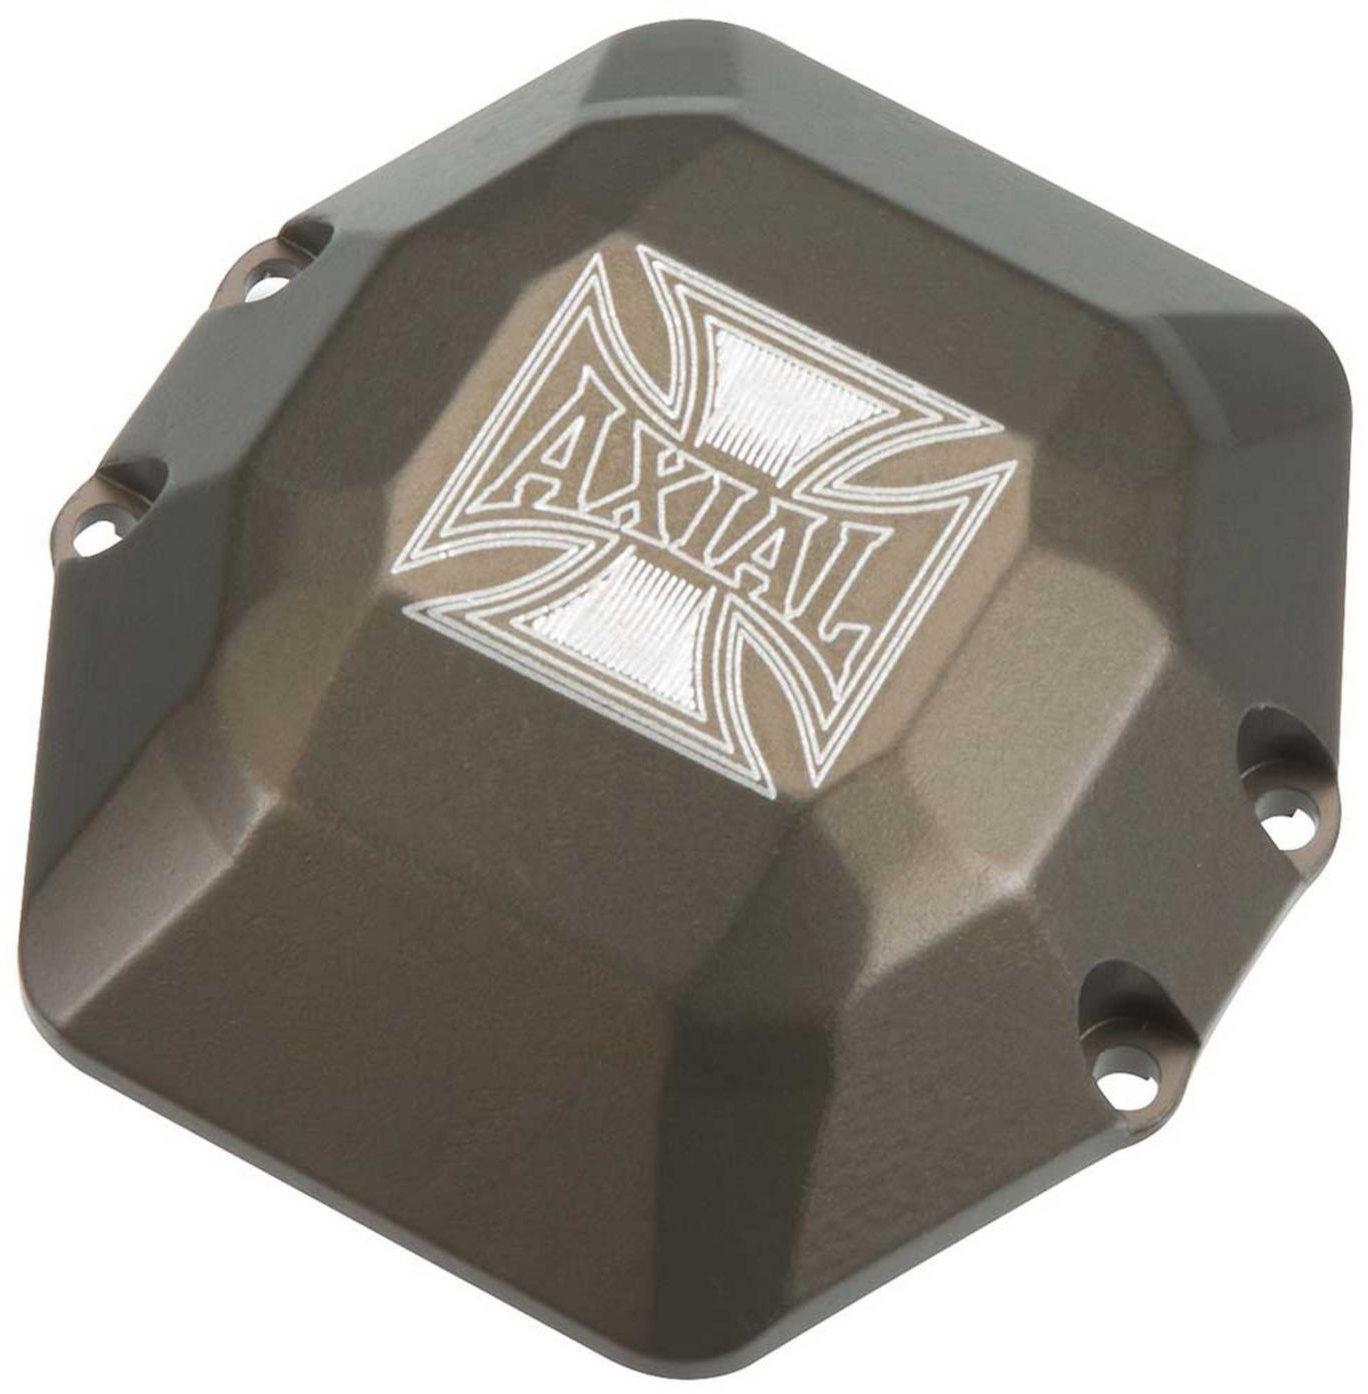 Axial AR60 OCP Machined Low-Pro Diff Cover